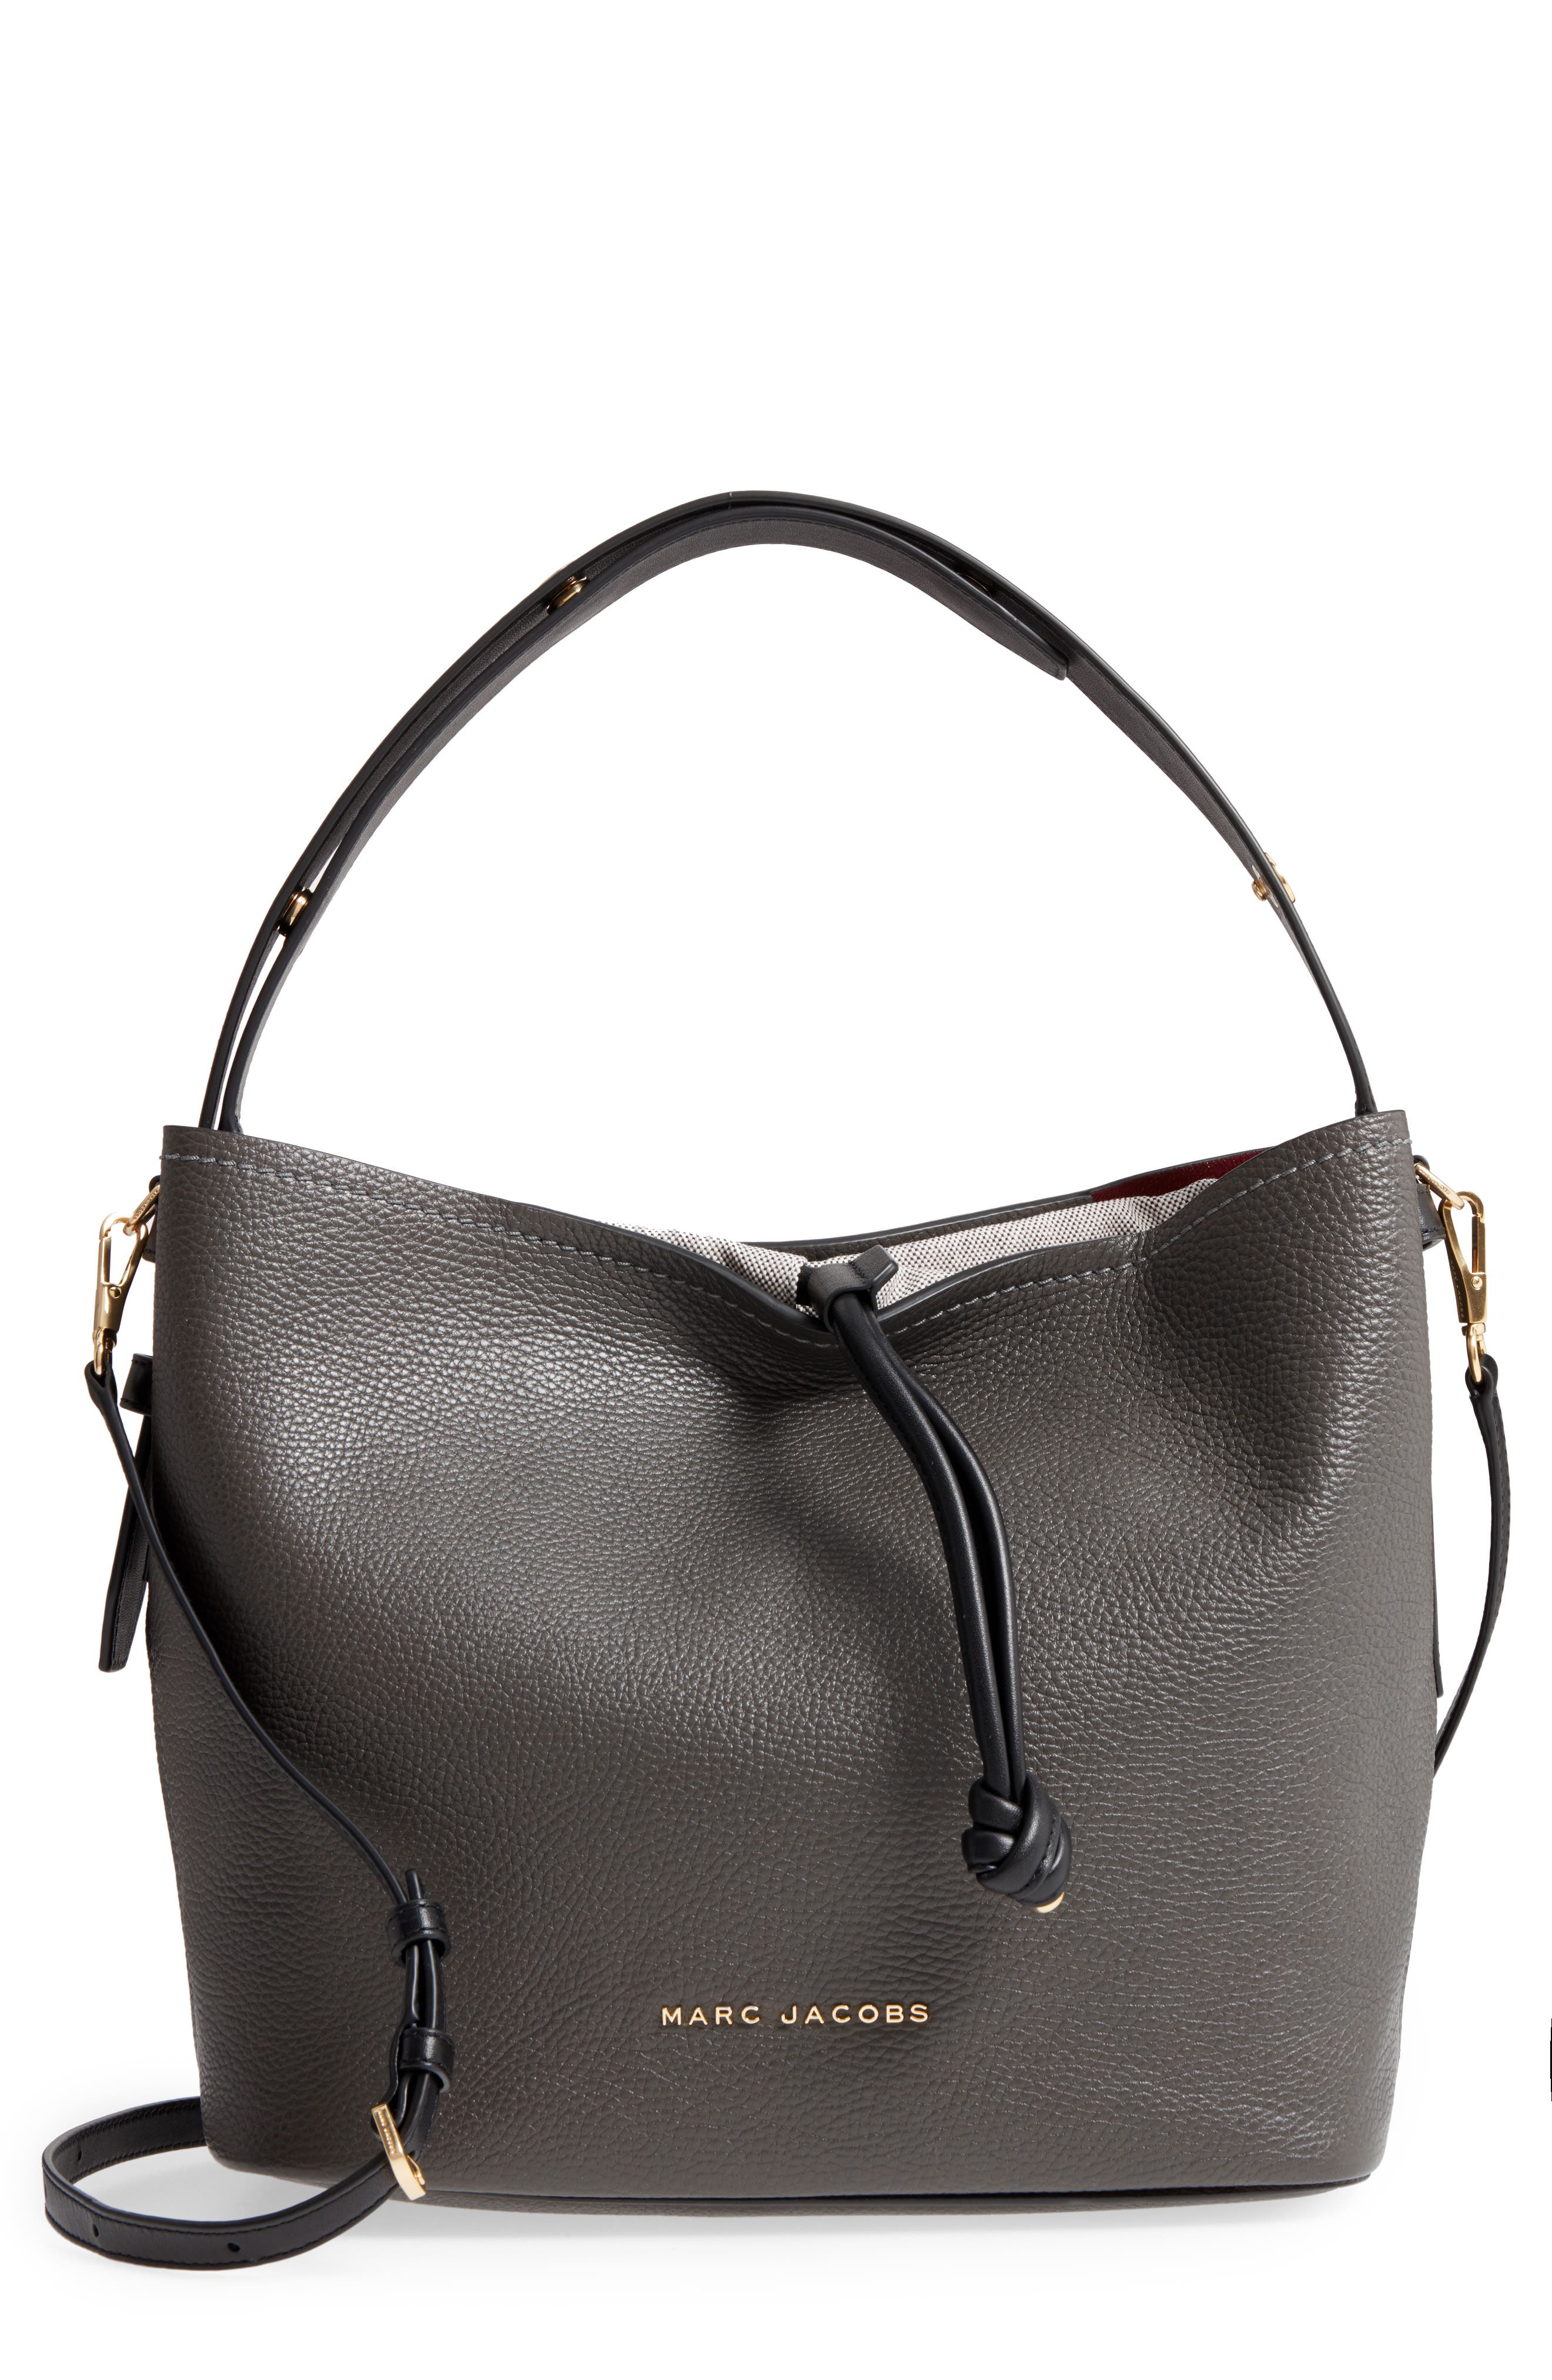 MARC JACOBS Road Leather Hobo